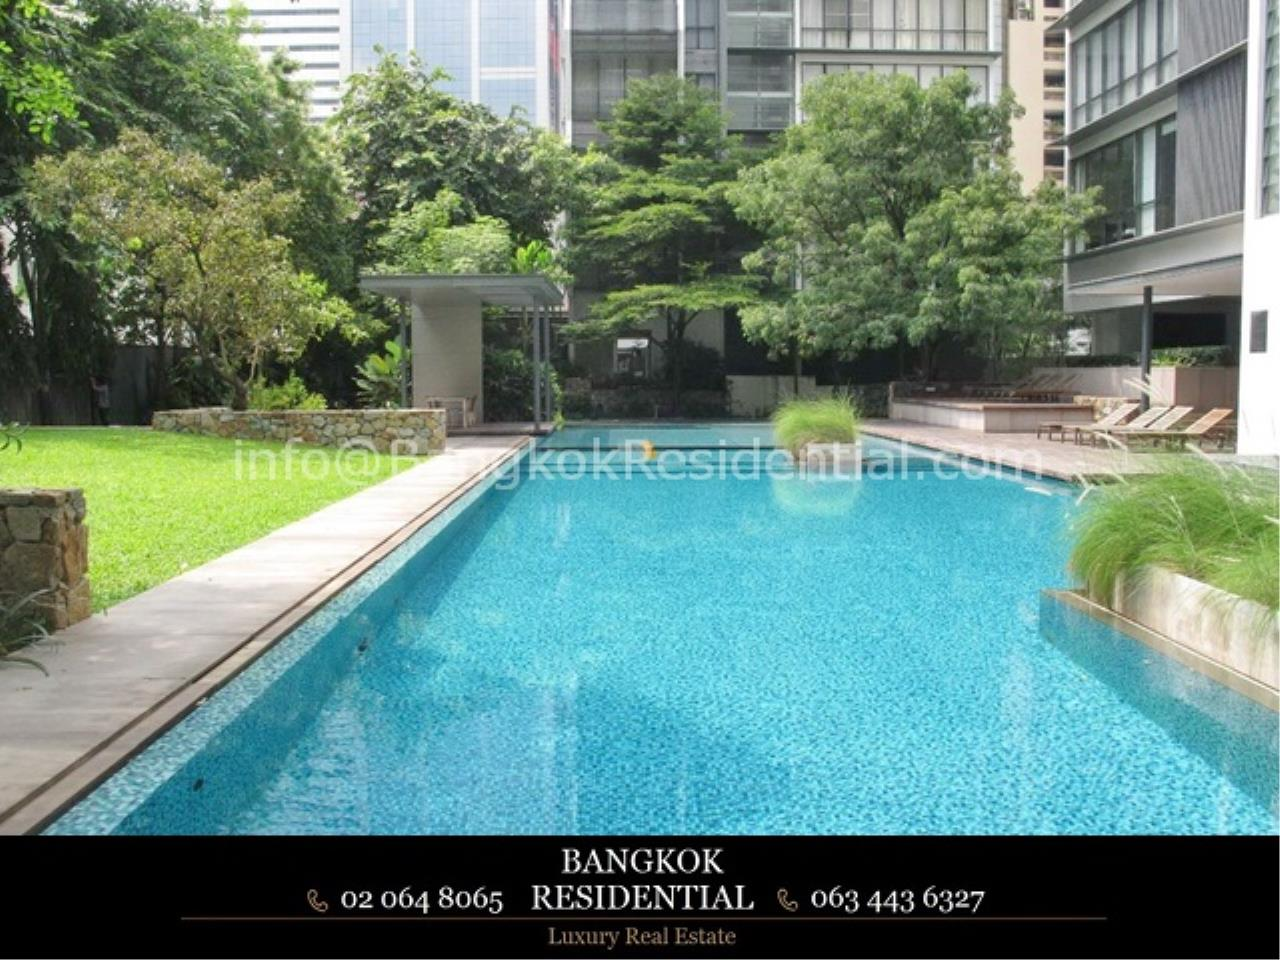 Bangkok Residential Agency's 2BR Domus For Sale (BR3439CD) 10